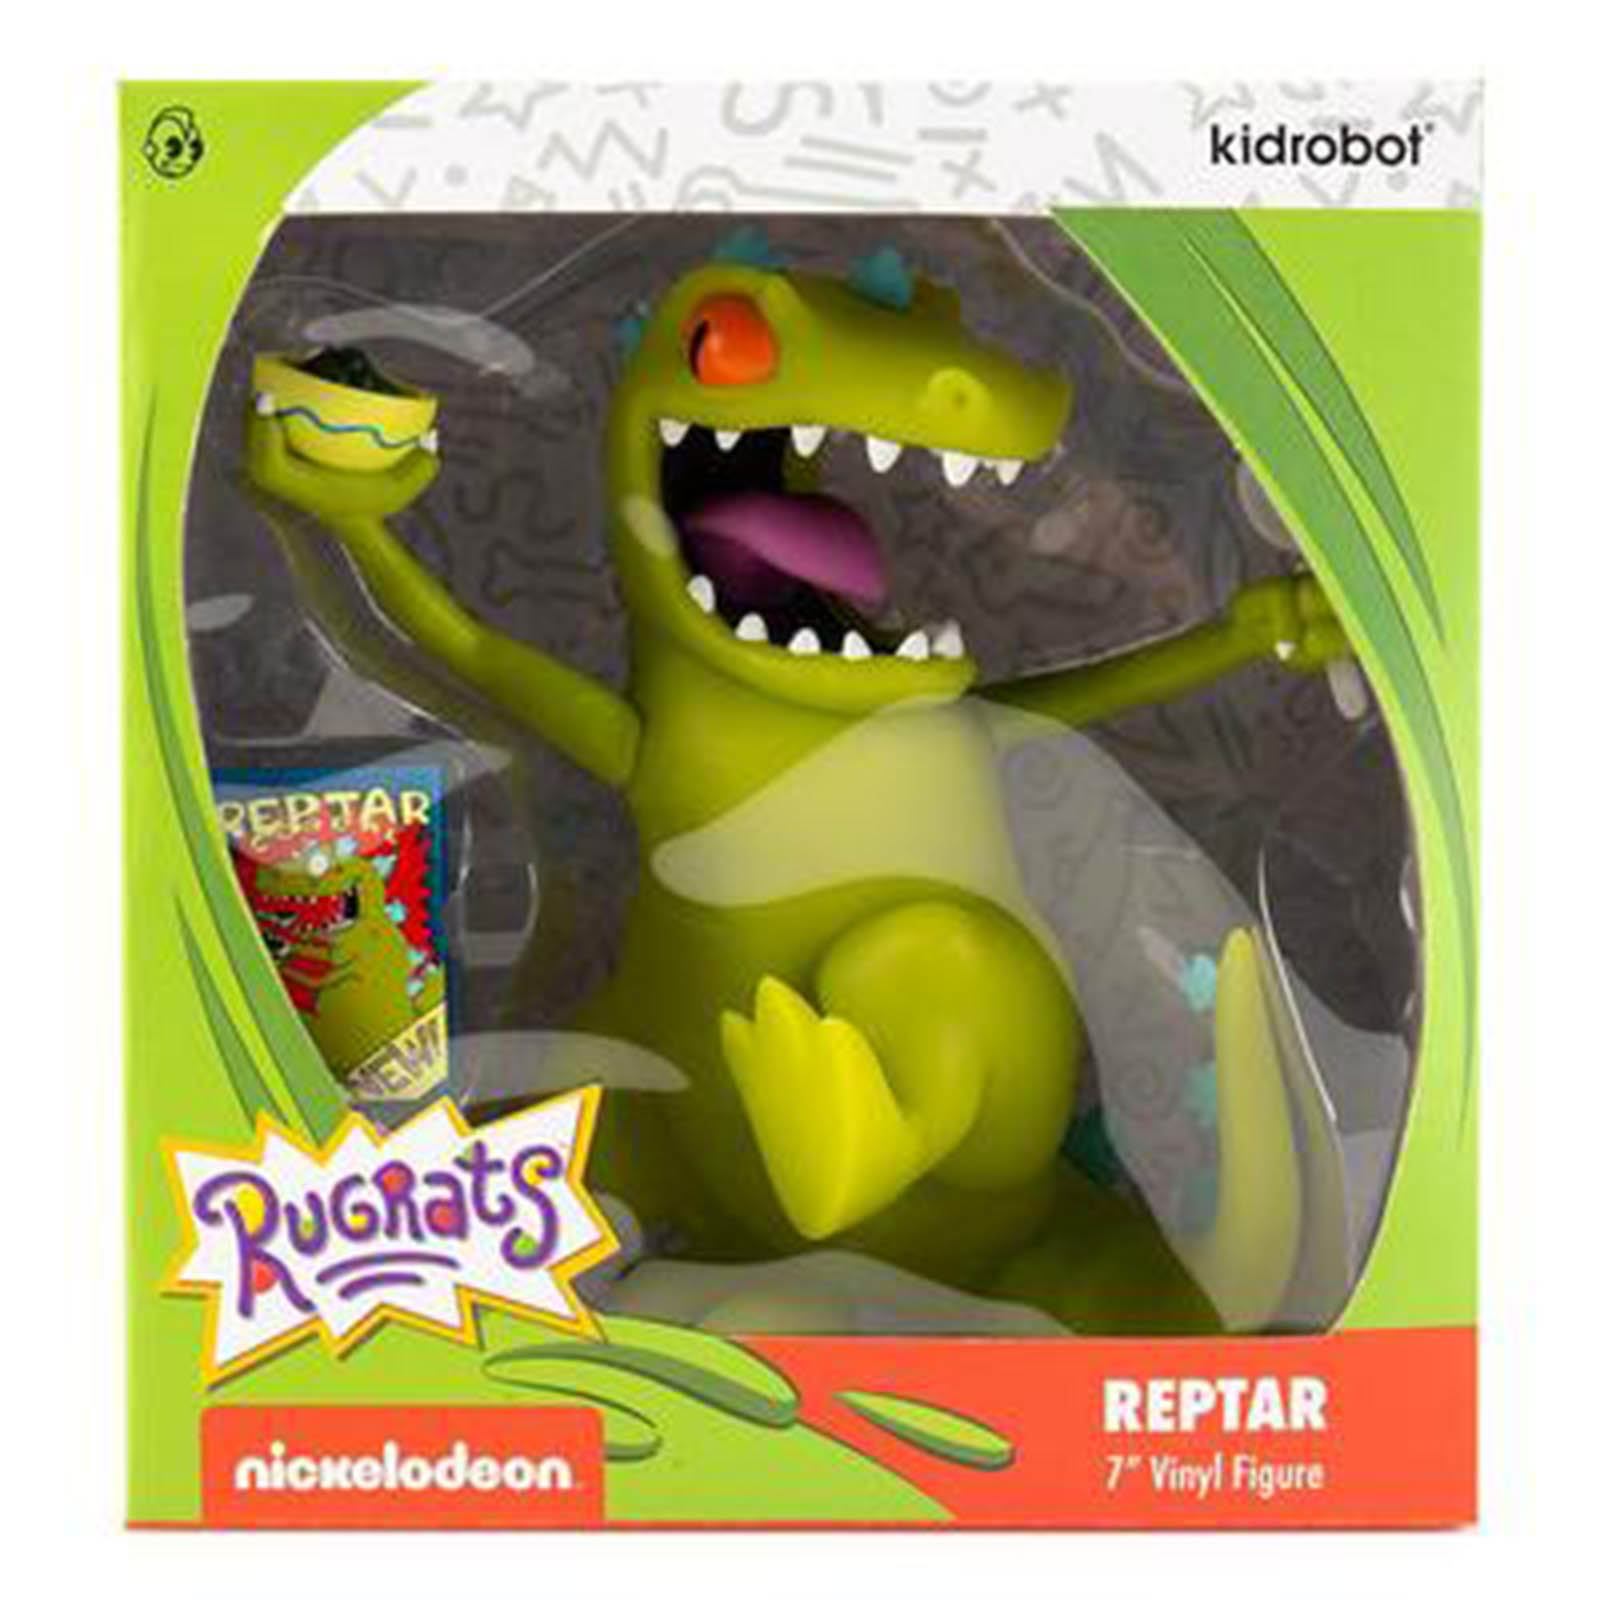 """Nickelodeon Rugrats Reptar 7"""" Vinyl Figure (US Only) by Kidrobot"""